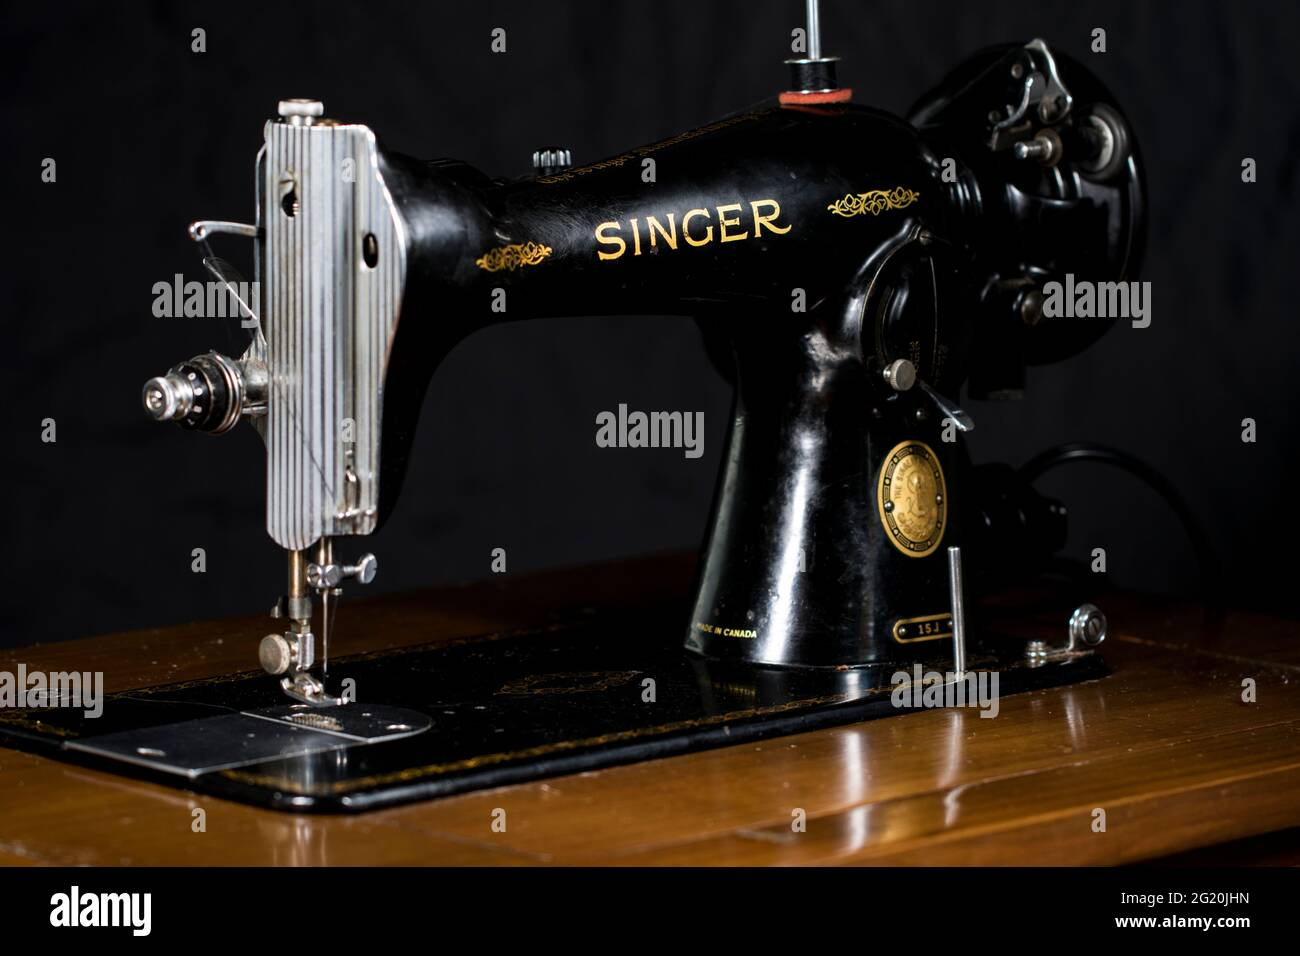 Dating sewing serial best (!) html singer number 2021 by machine Dating Singer